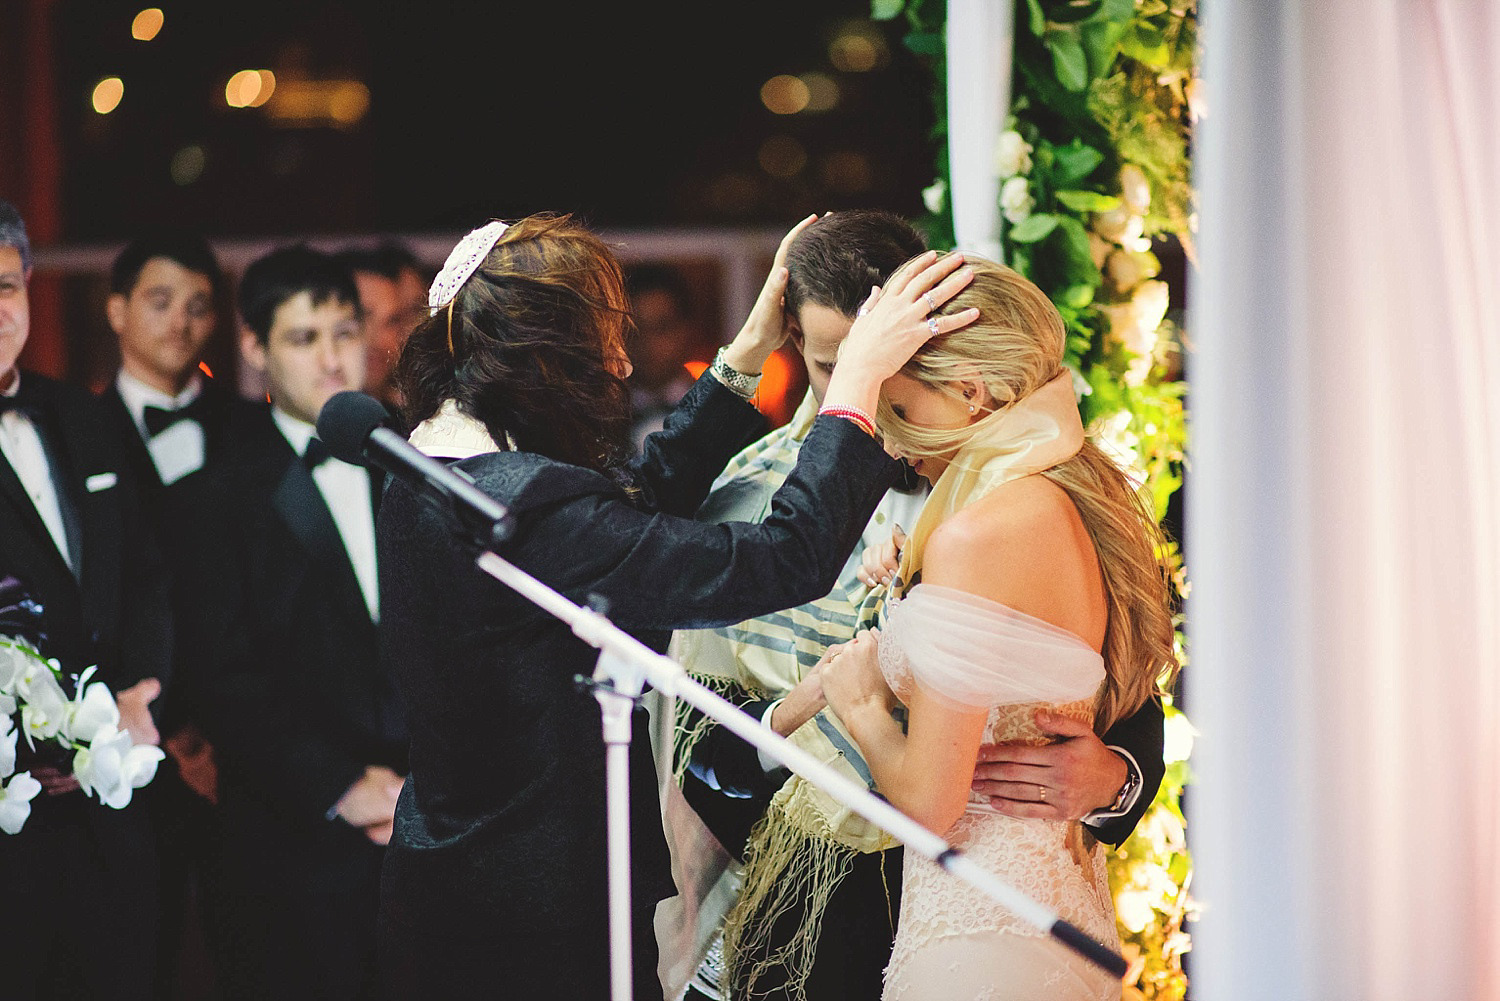 romantic-w-fort-lauderdale-wedding: praying over bride and groom